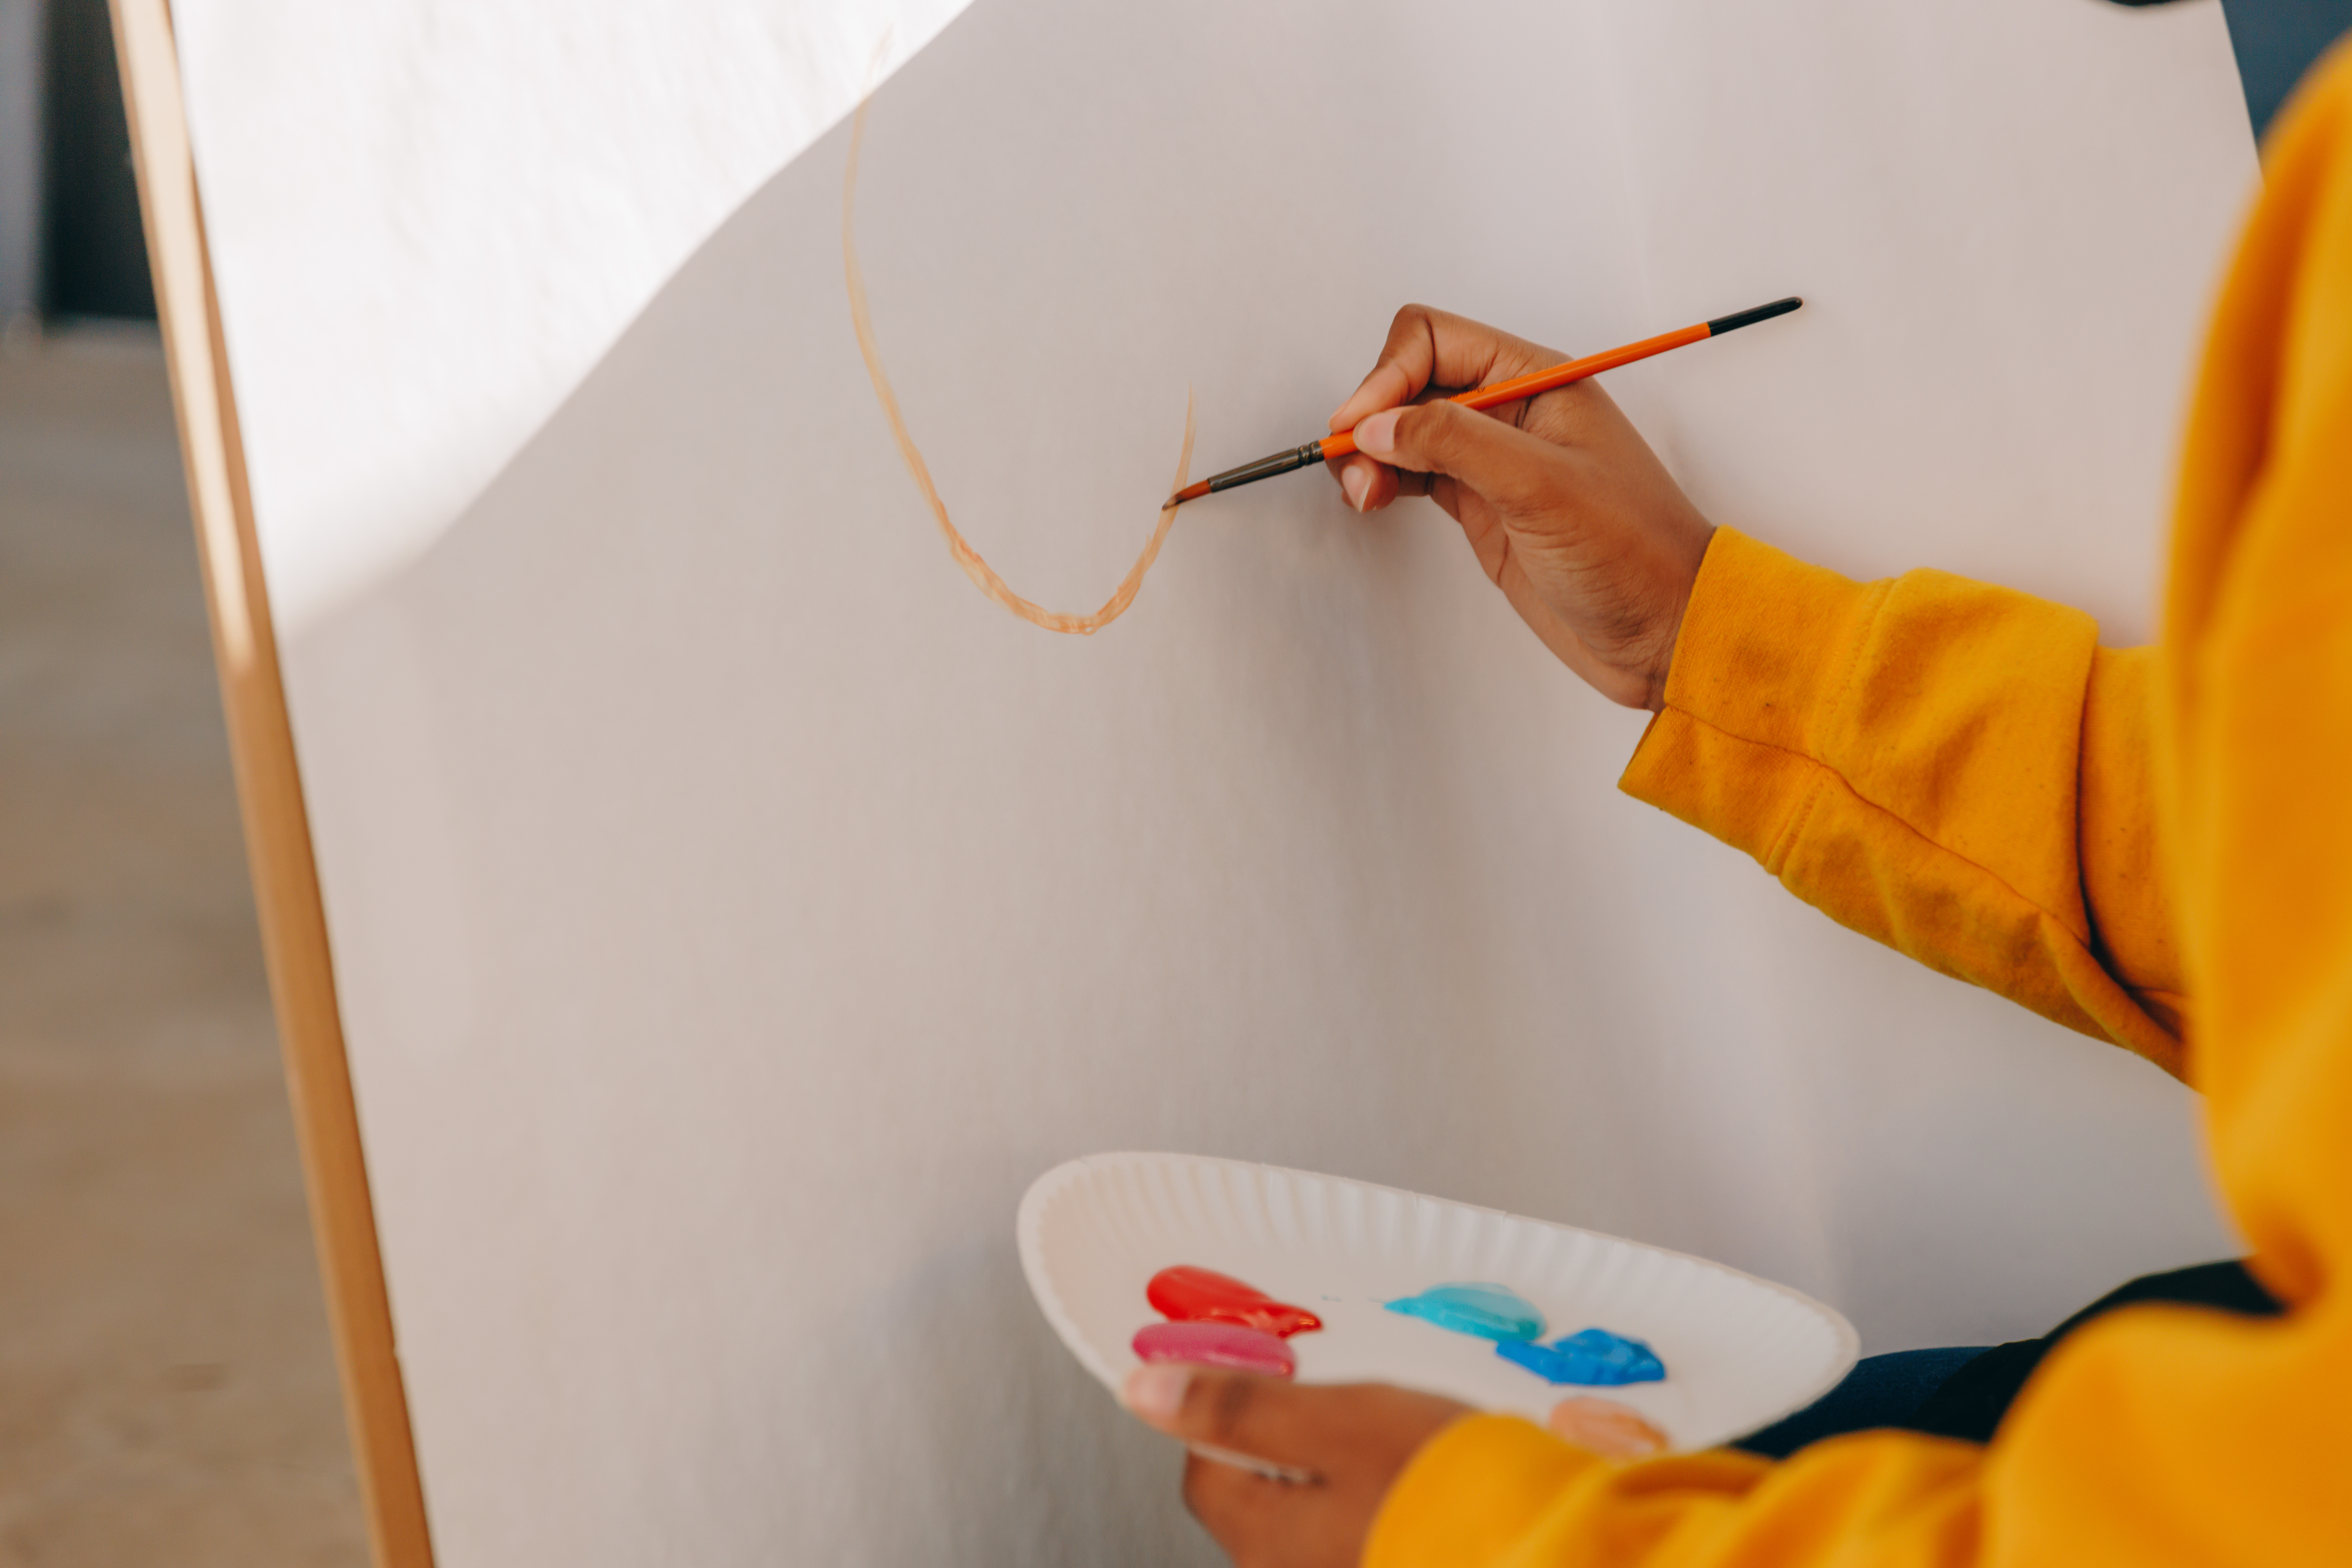 A tightly cropped photo of dark-skinned hands working on an easel outdoors